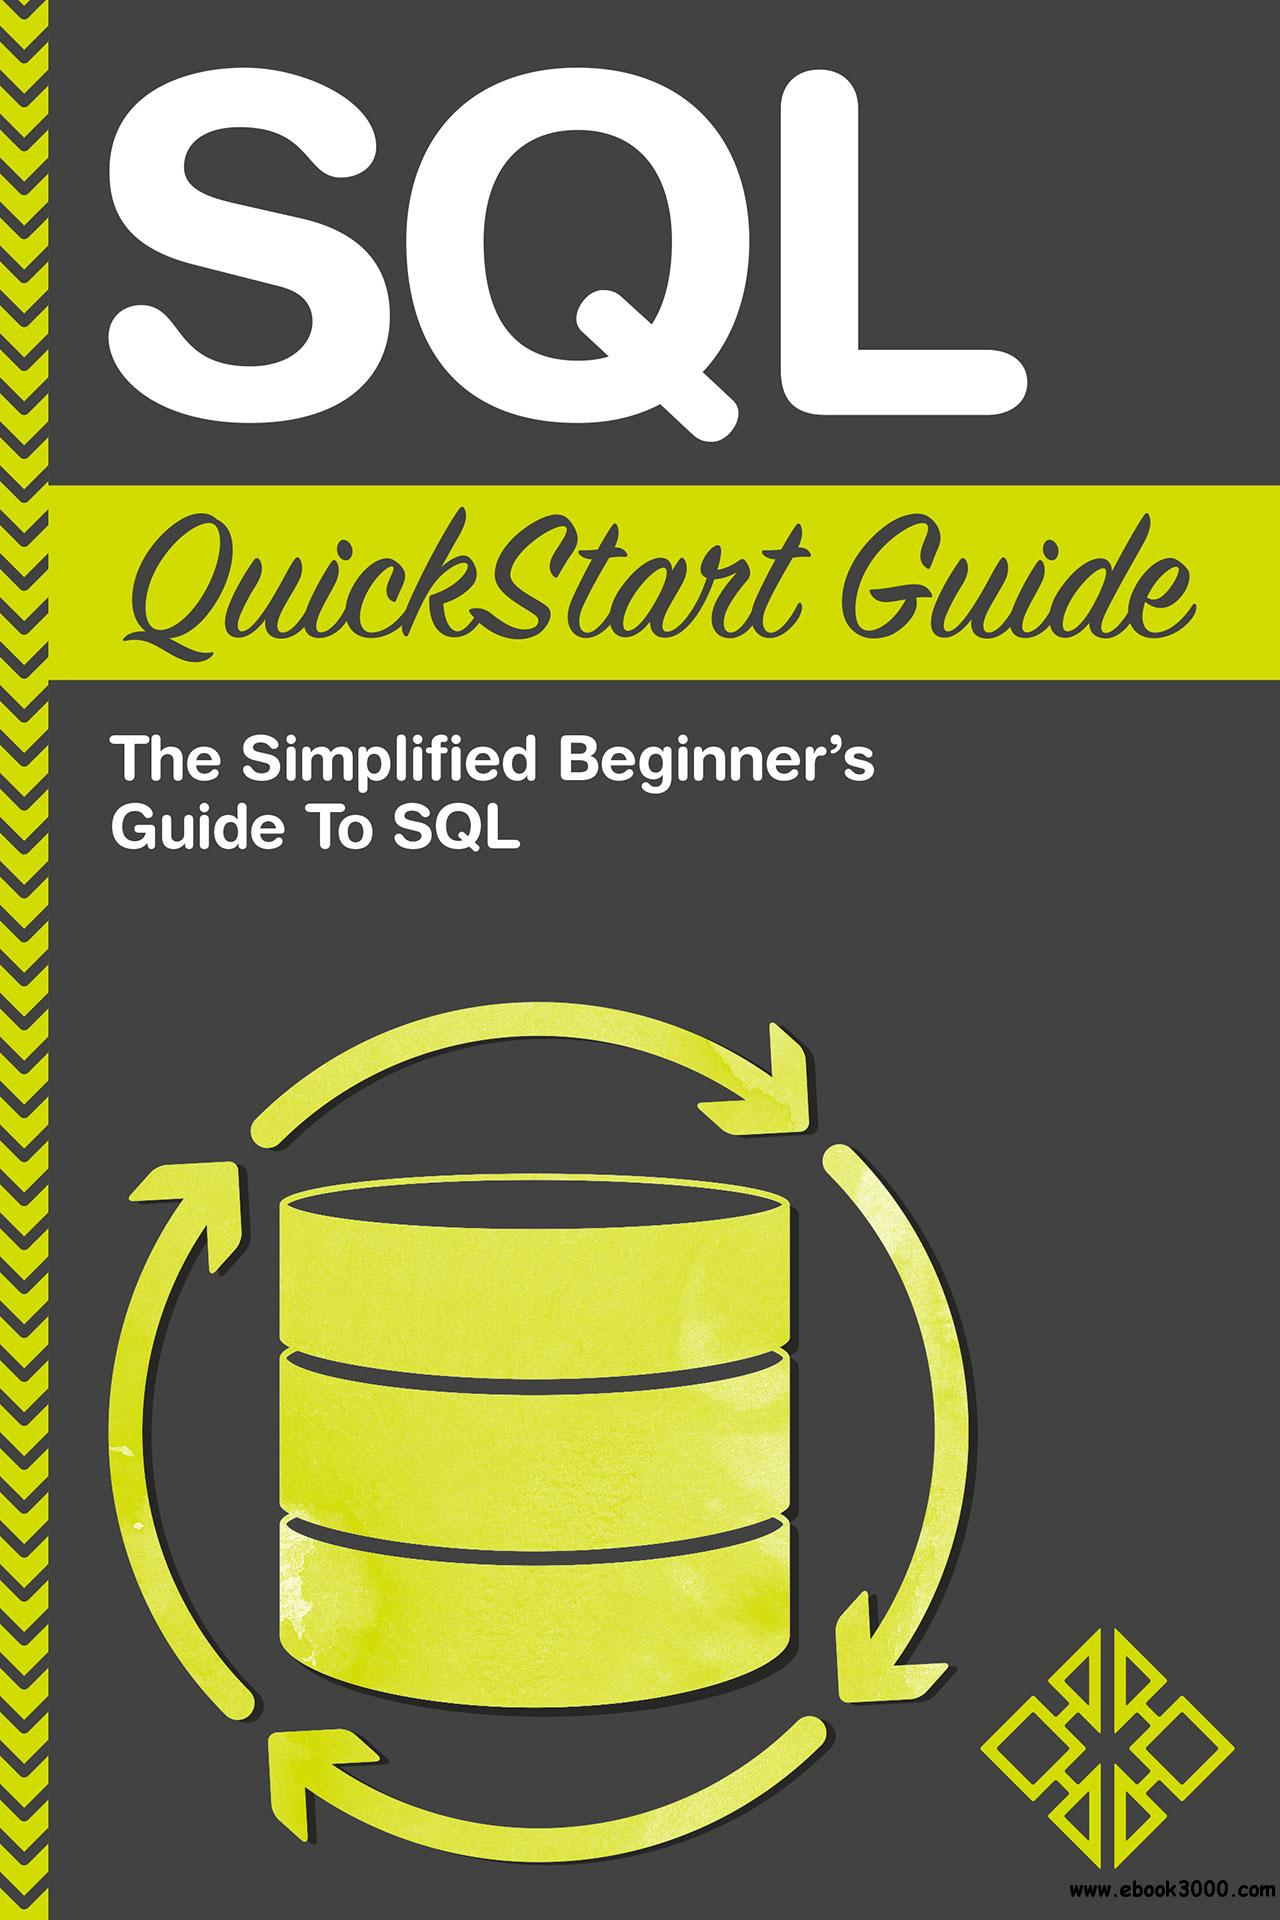 SQL: QuickStart Guide - The Simplified Beginner's Guide To SQL